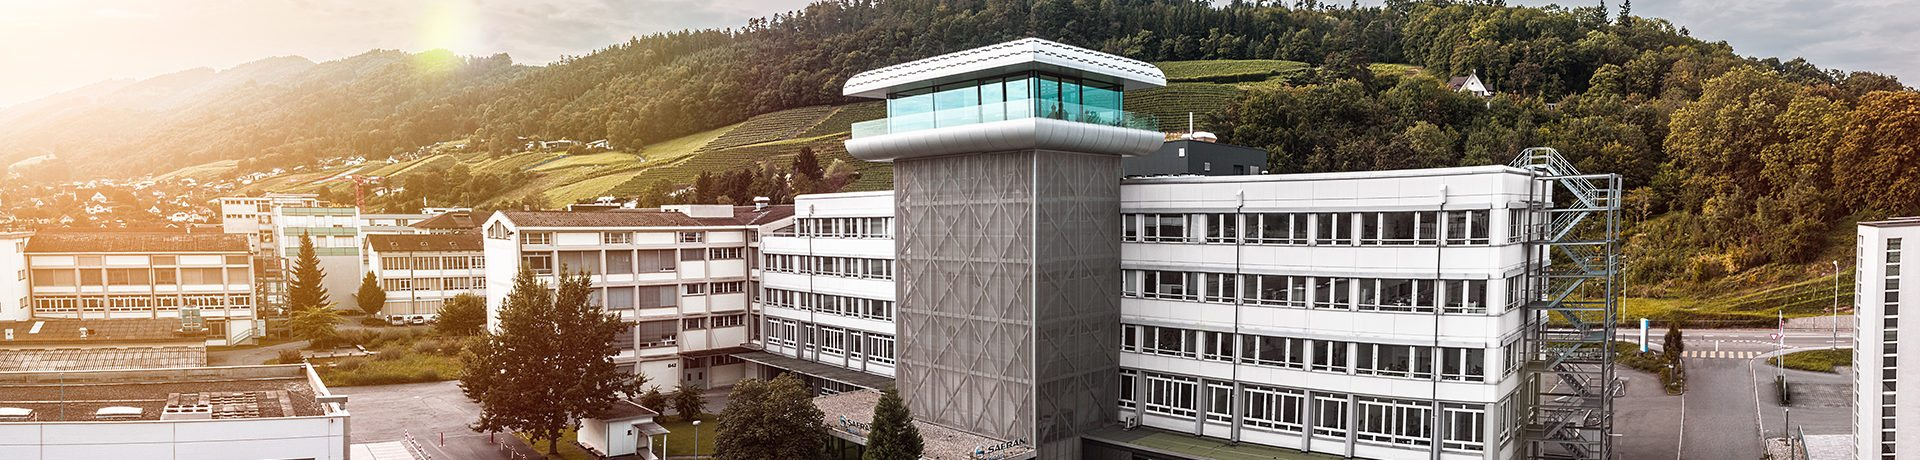 Safran Vectronix Building Switzerland